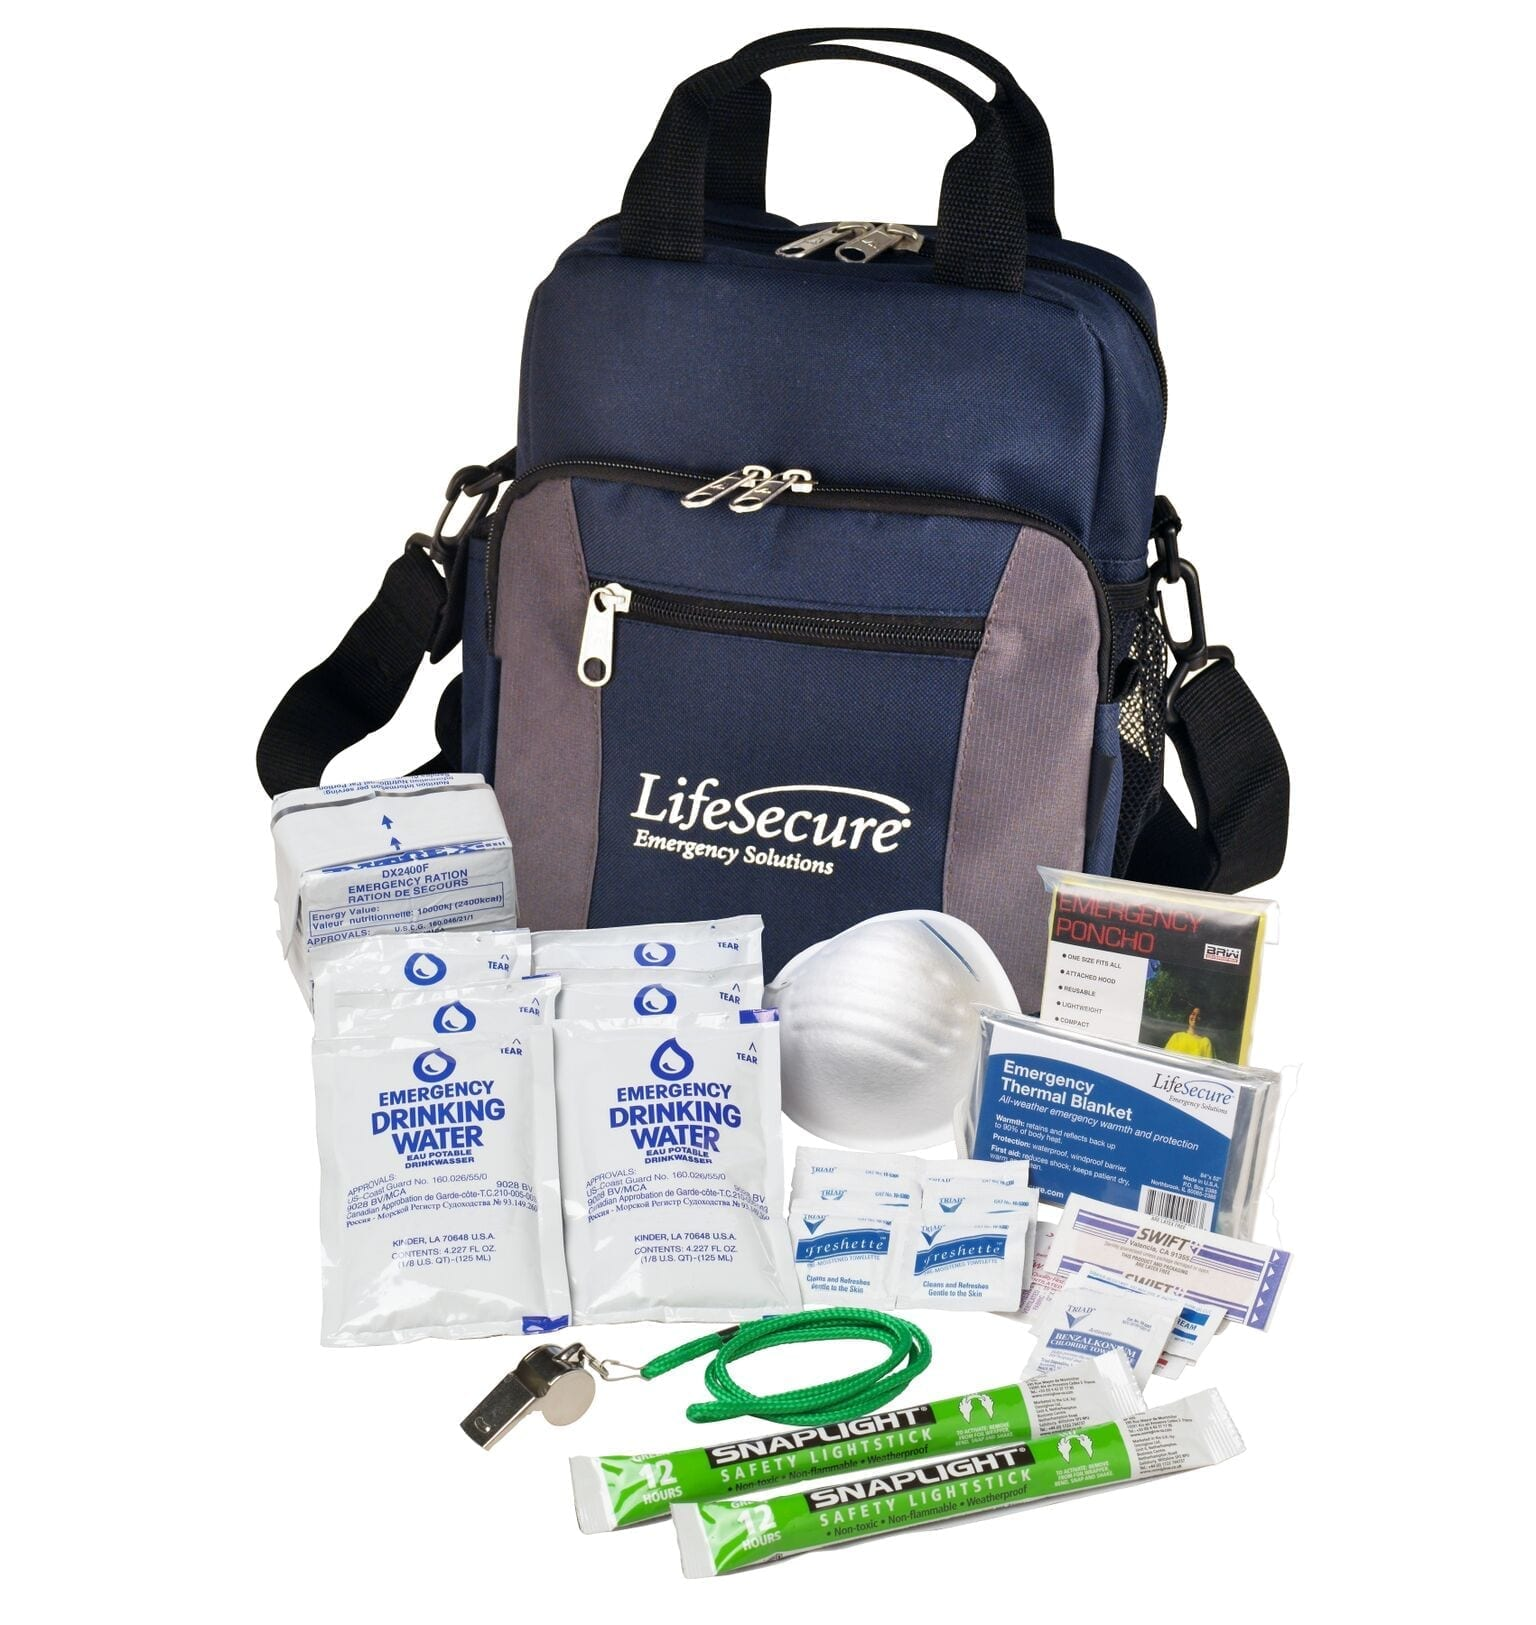 LifeSecure Compact 3-DAY Emergency Survival Kit (80001)